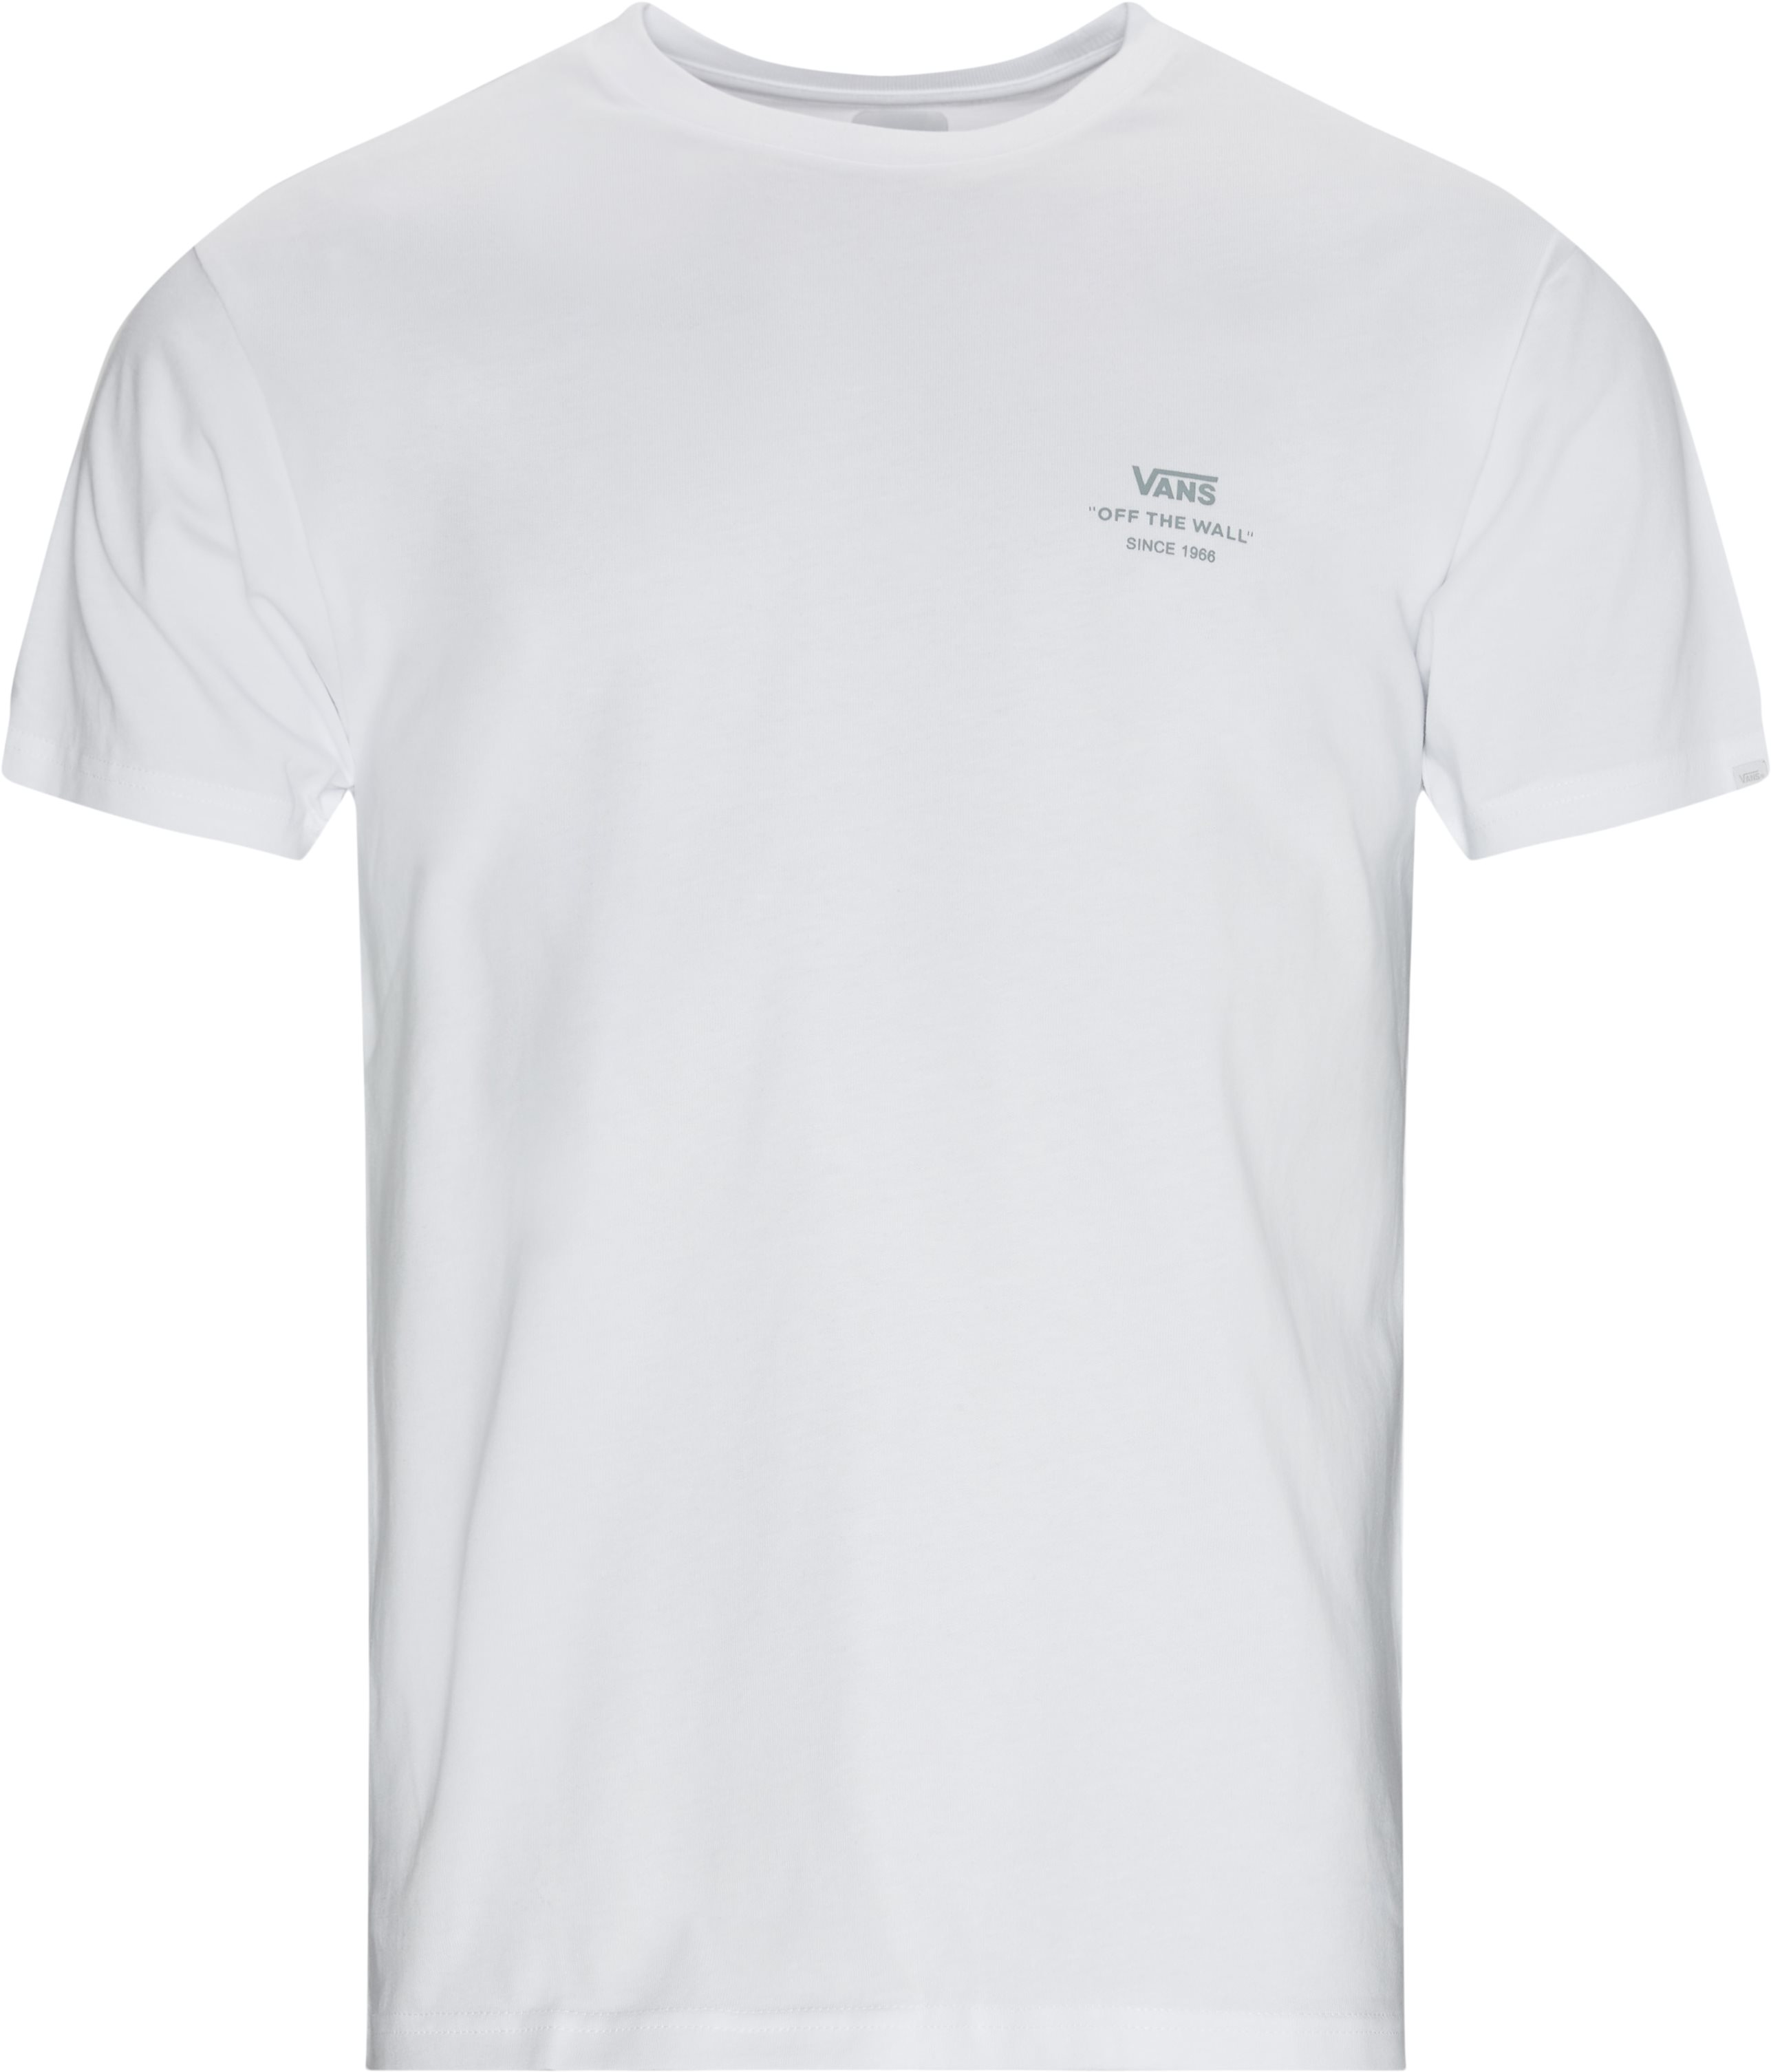 OTW Logo Tee - T-shirts - Regular - White